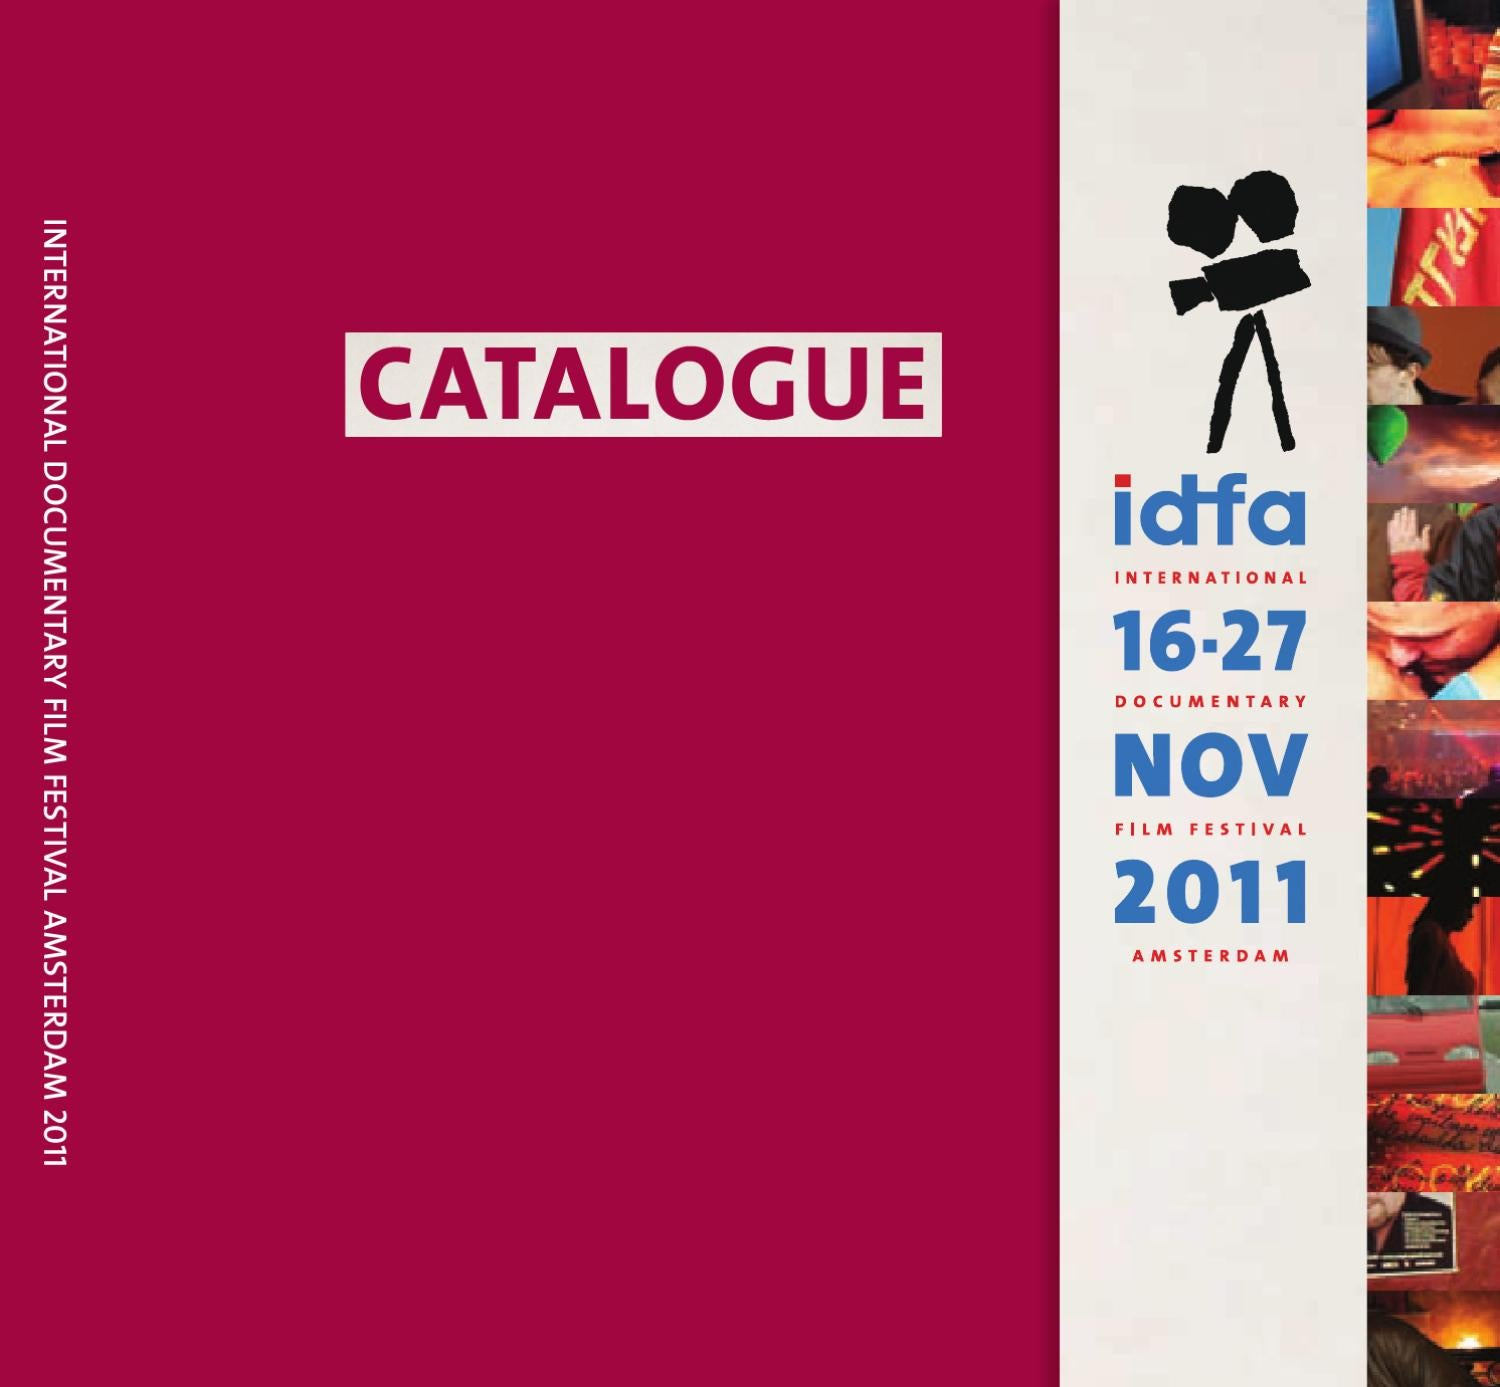 90dcc66e21d Catalogue IDFA 2011 by IDFA International Documentary Film Festival  Amsterdam - issuu